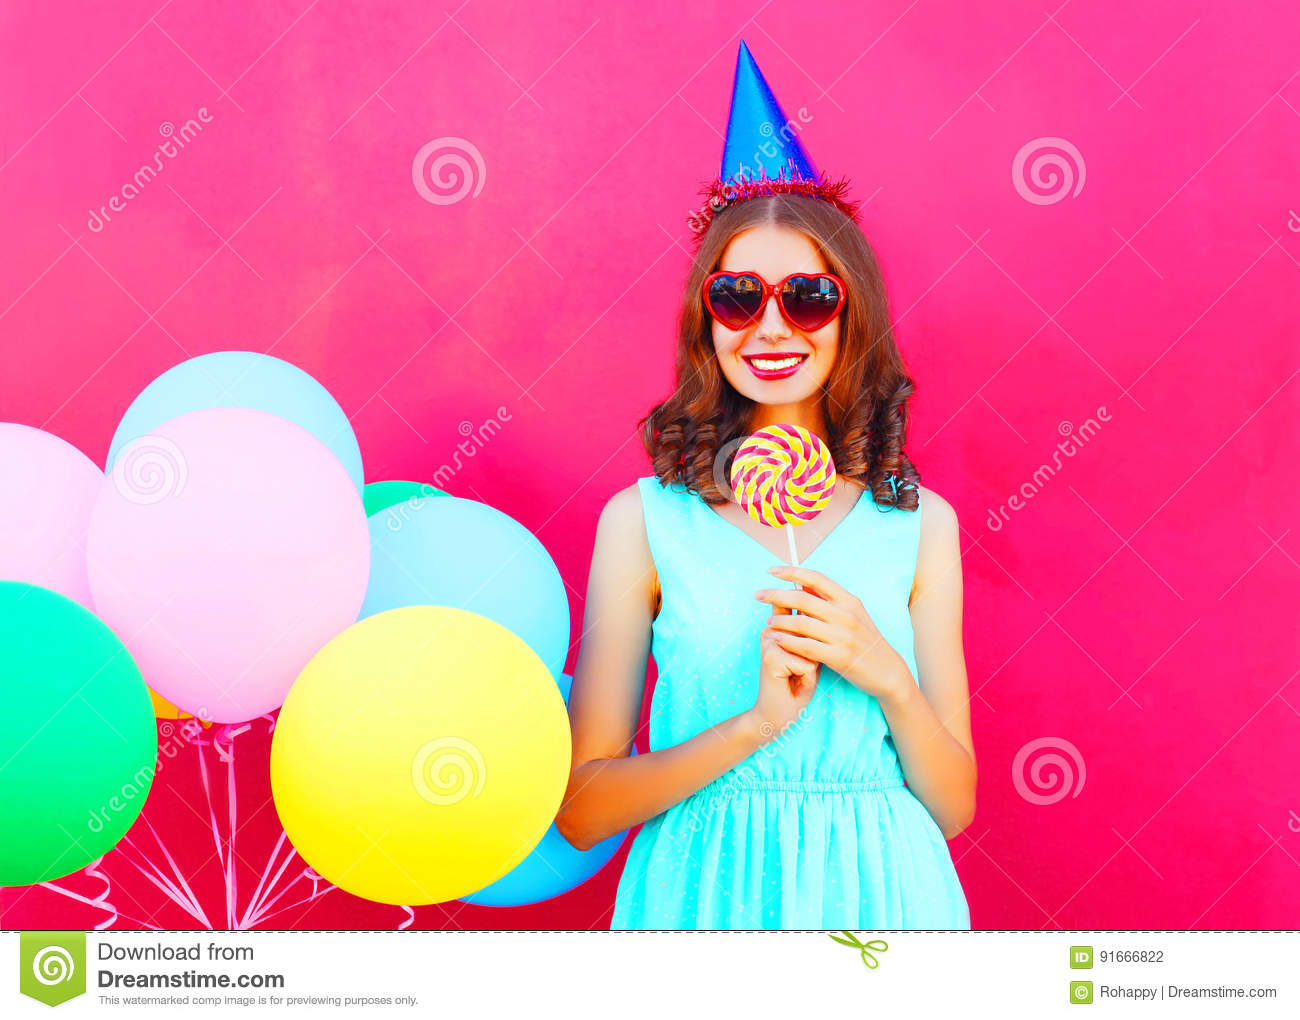 Happy smiling young woman in a birthday cap with an air colorful balloons and lollipop on stick over pink background